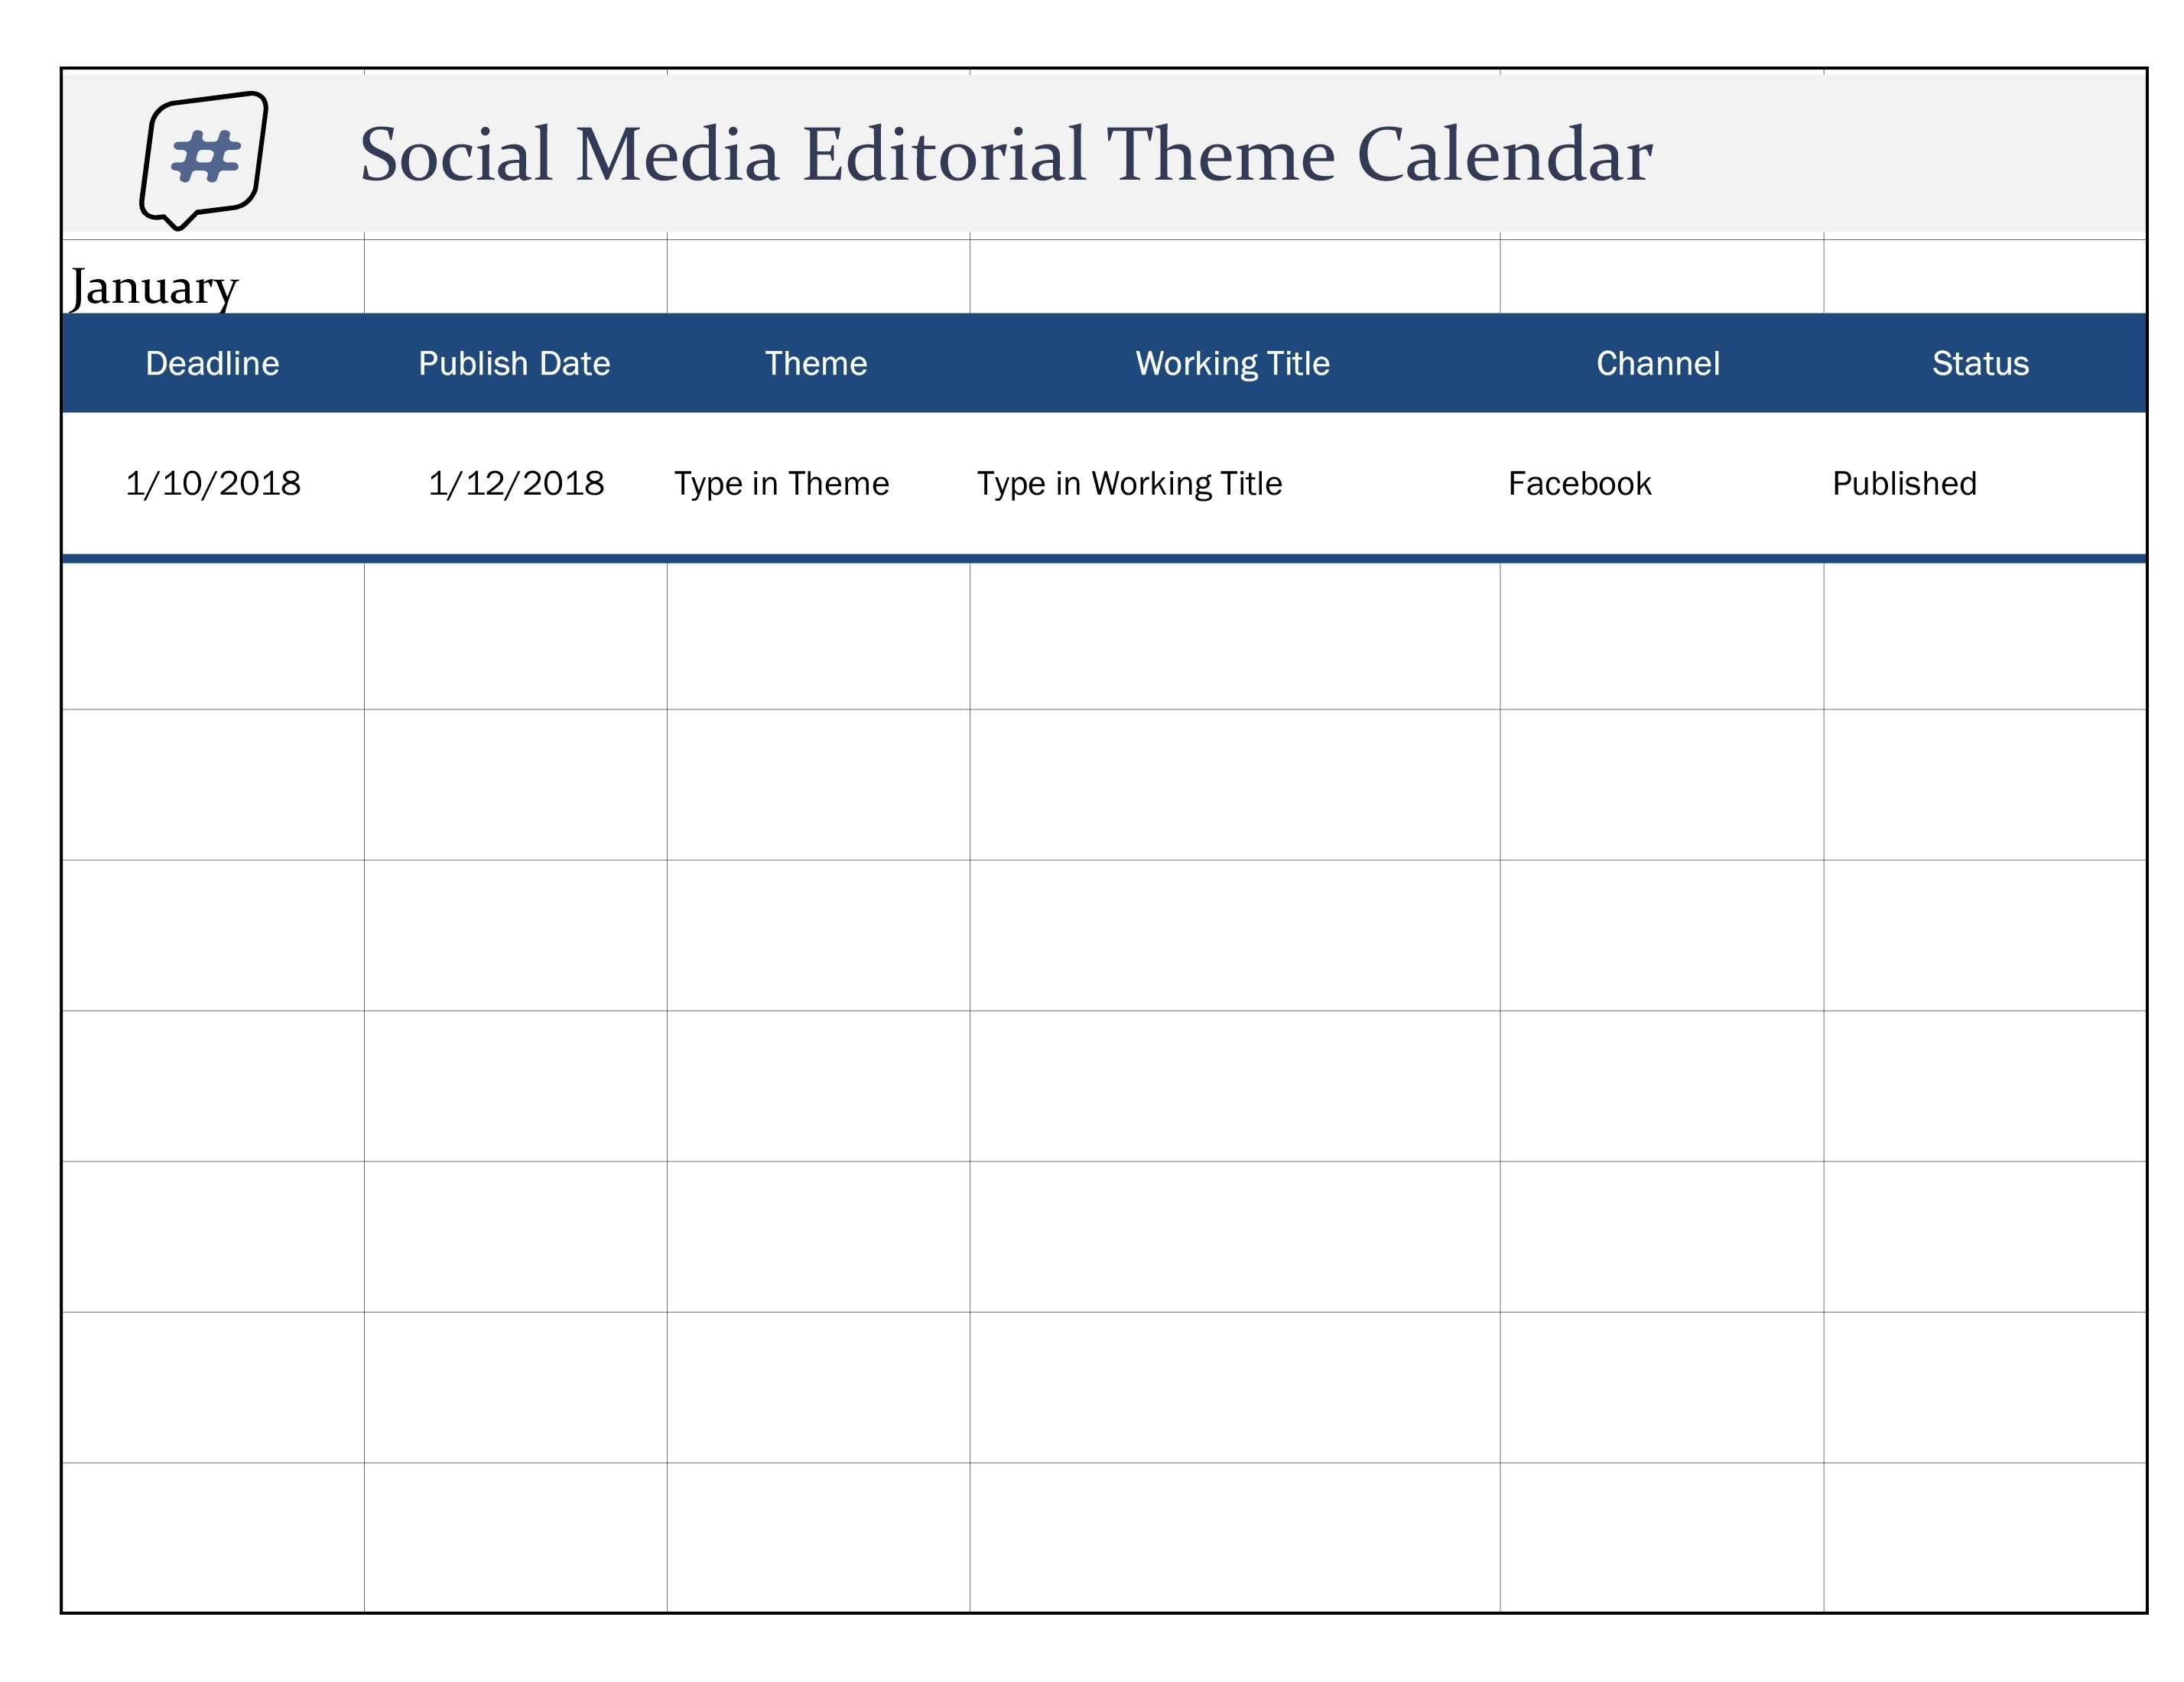 Social Media Editorial Theme Calendar Excel intended for Social Media Posting Calendar Template Free Printable Excel